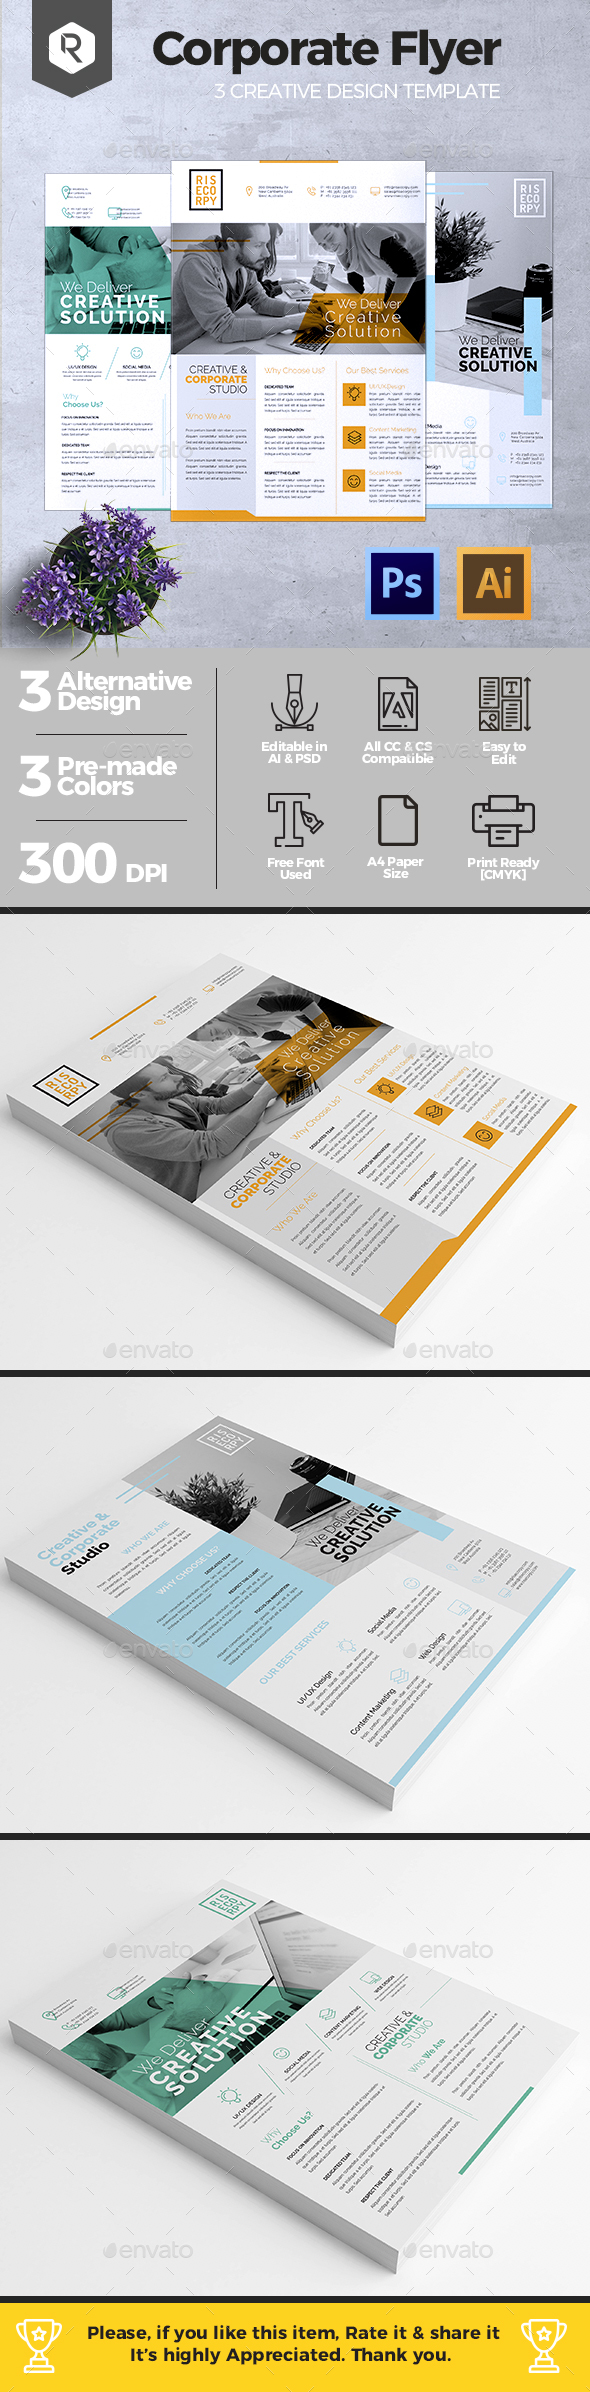 Creative Corporate Flyer Vol. 02 - Corporate Flyers